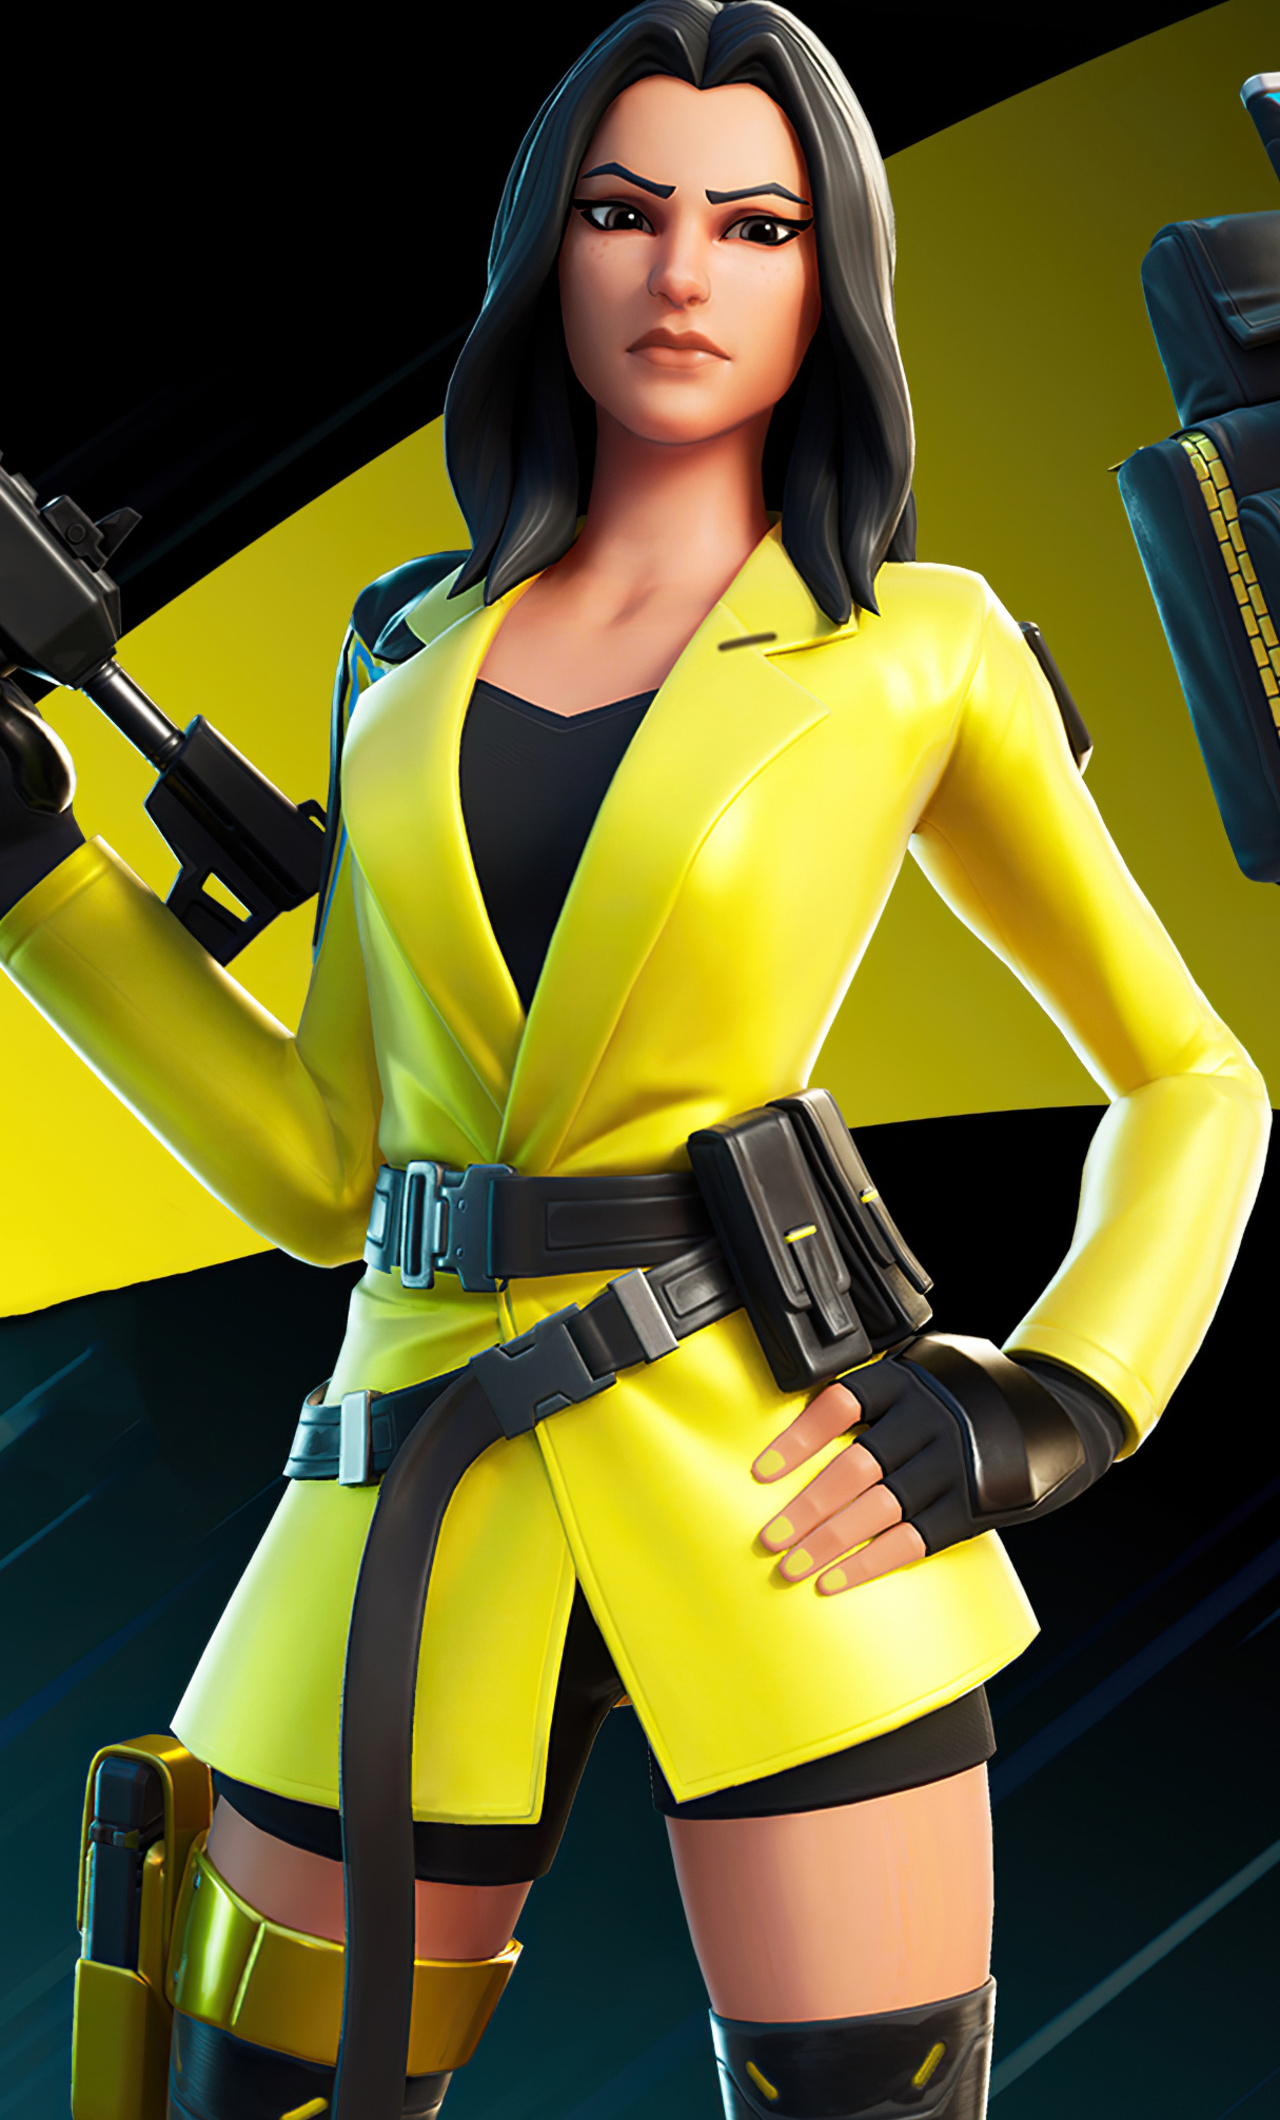 1280x2120 Yellow Jacket Fortnite 2020 Iphone 6 Hd 4k Wallpapers Images Backgrounds Photos And Pictures